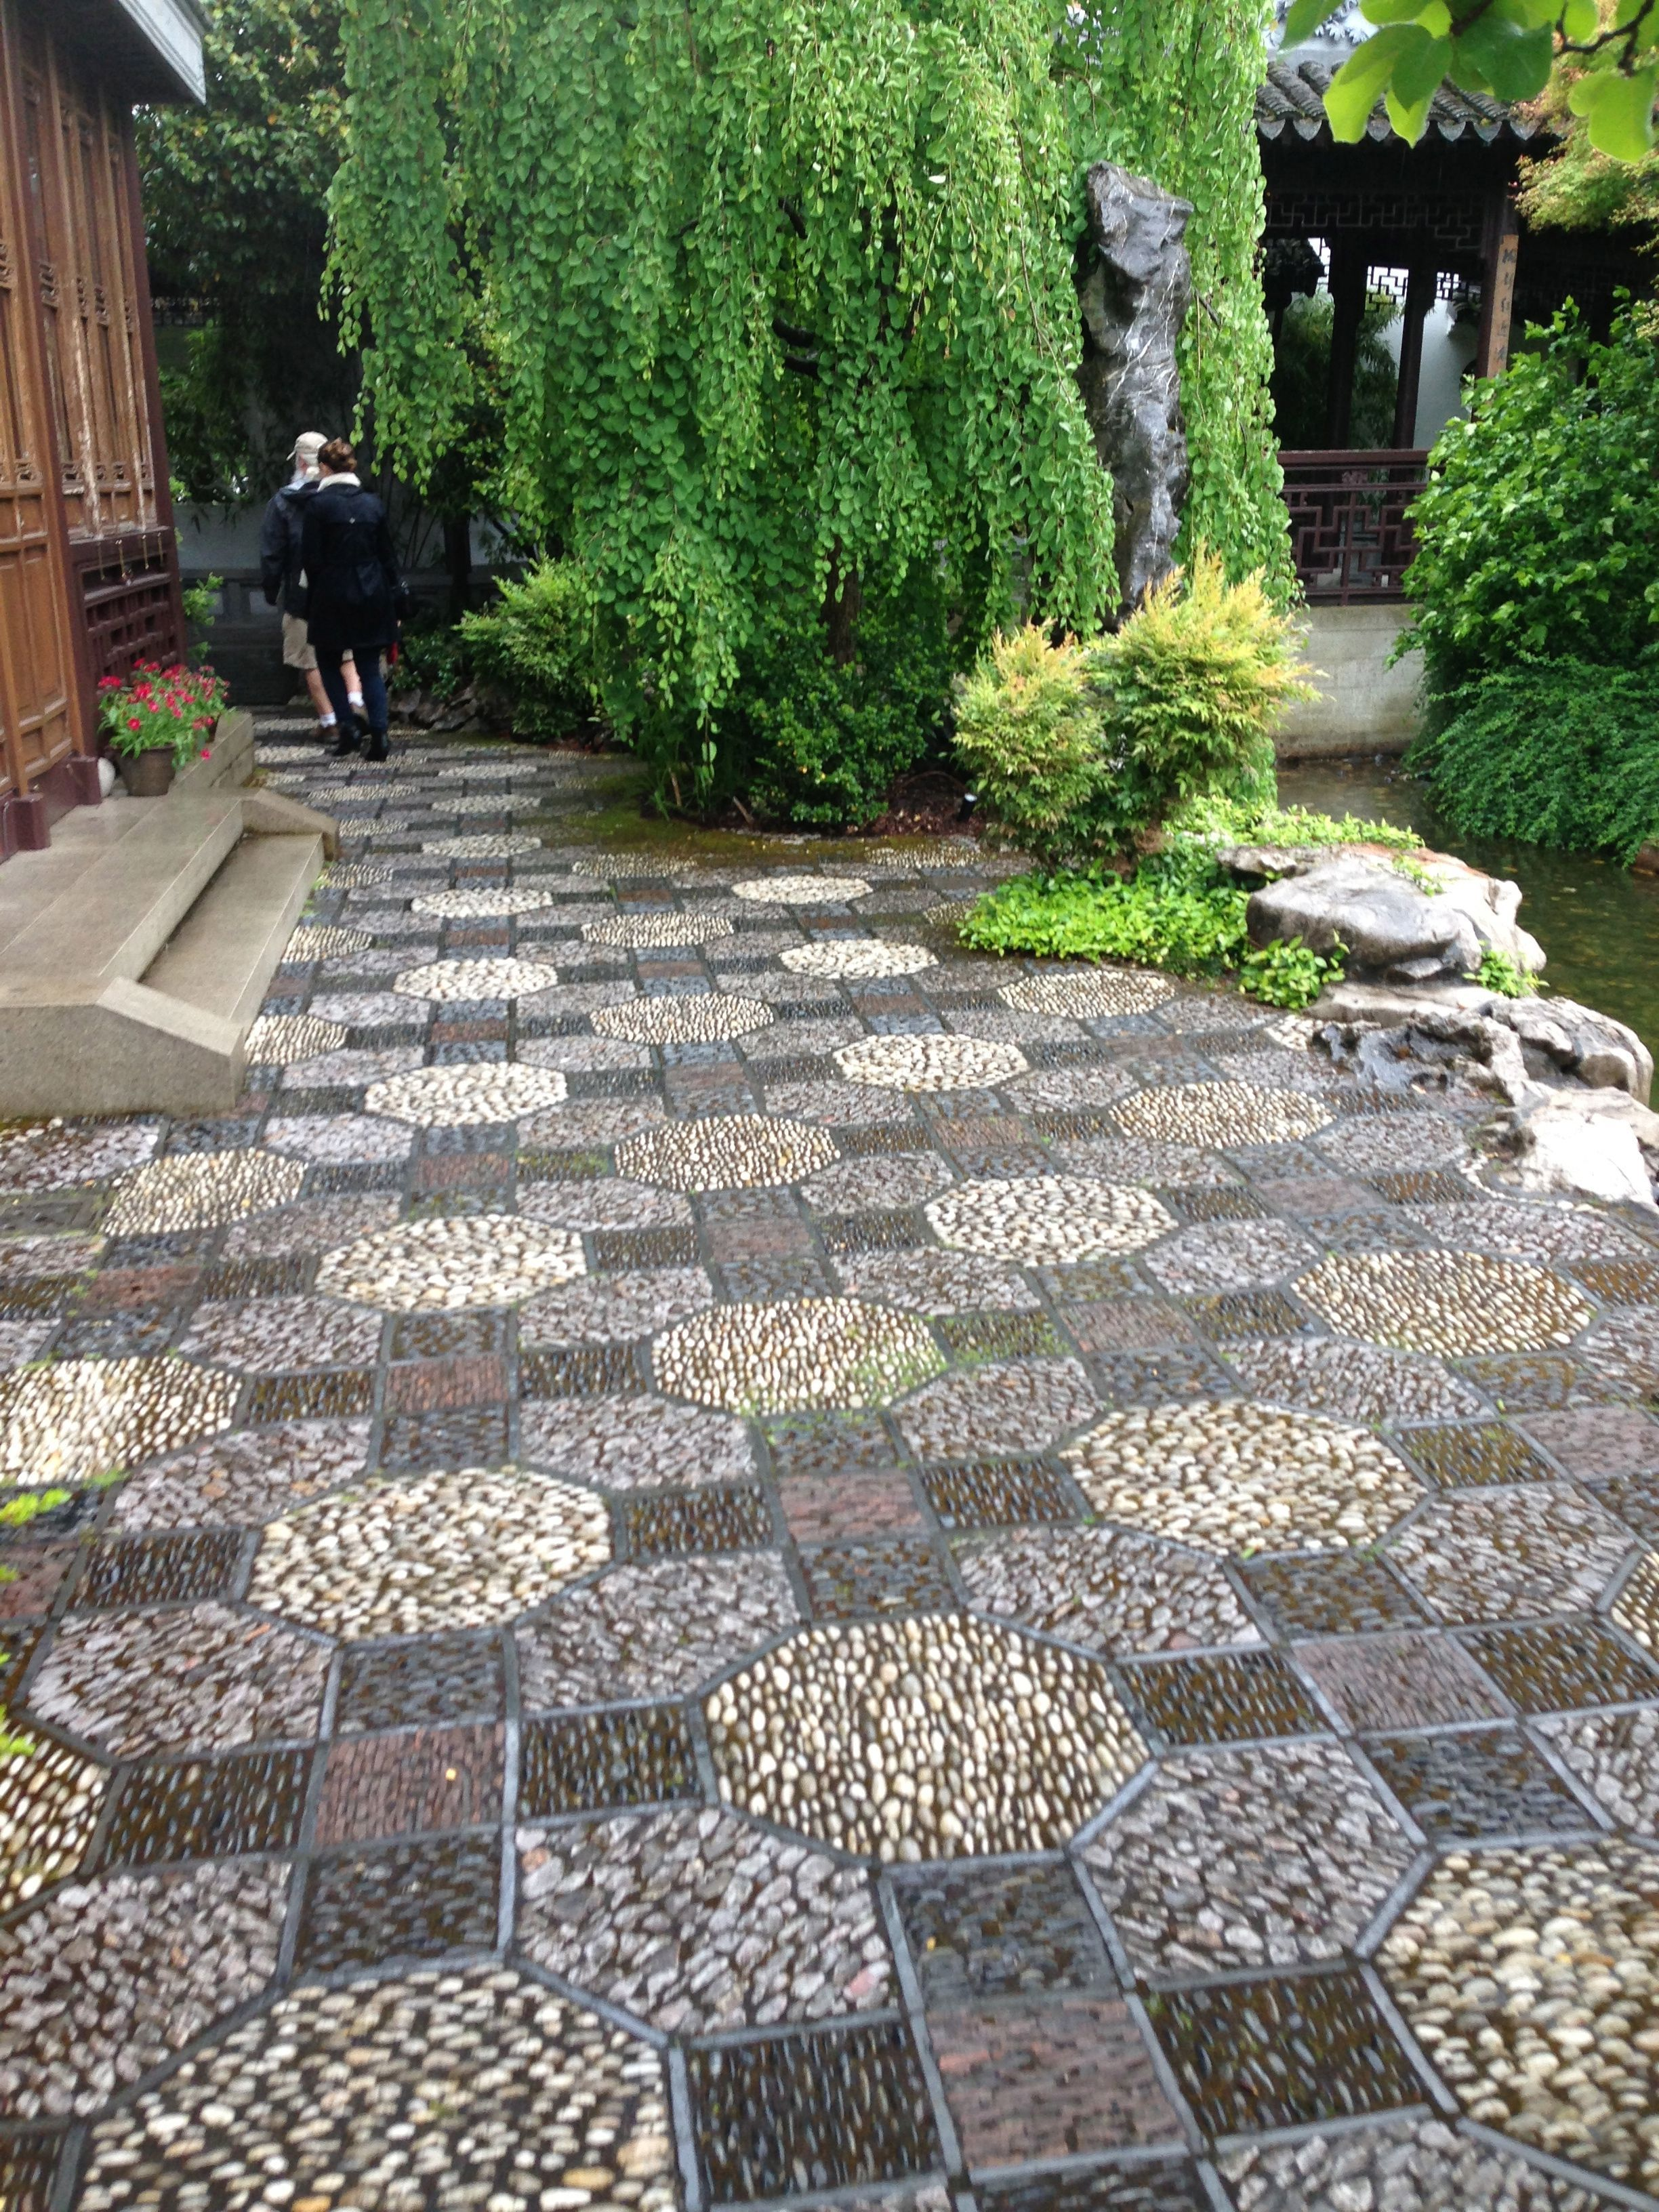 Chinese Garden in Portland has incredible pebble mosaic